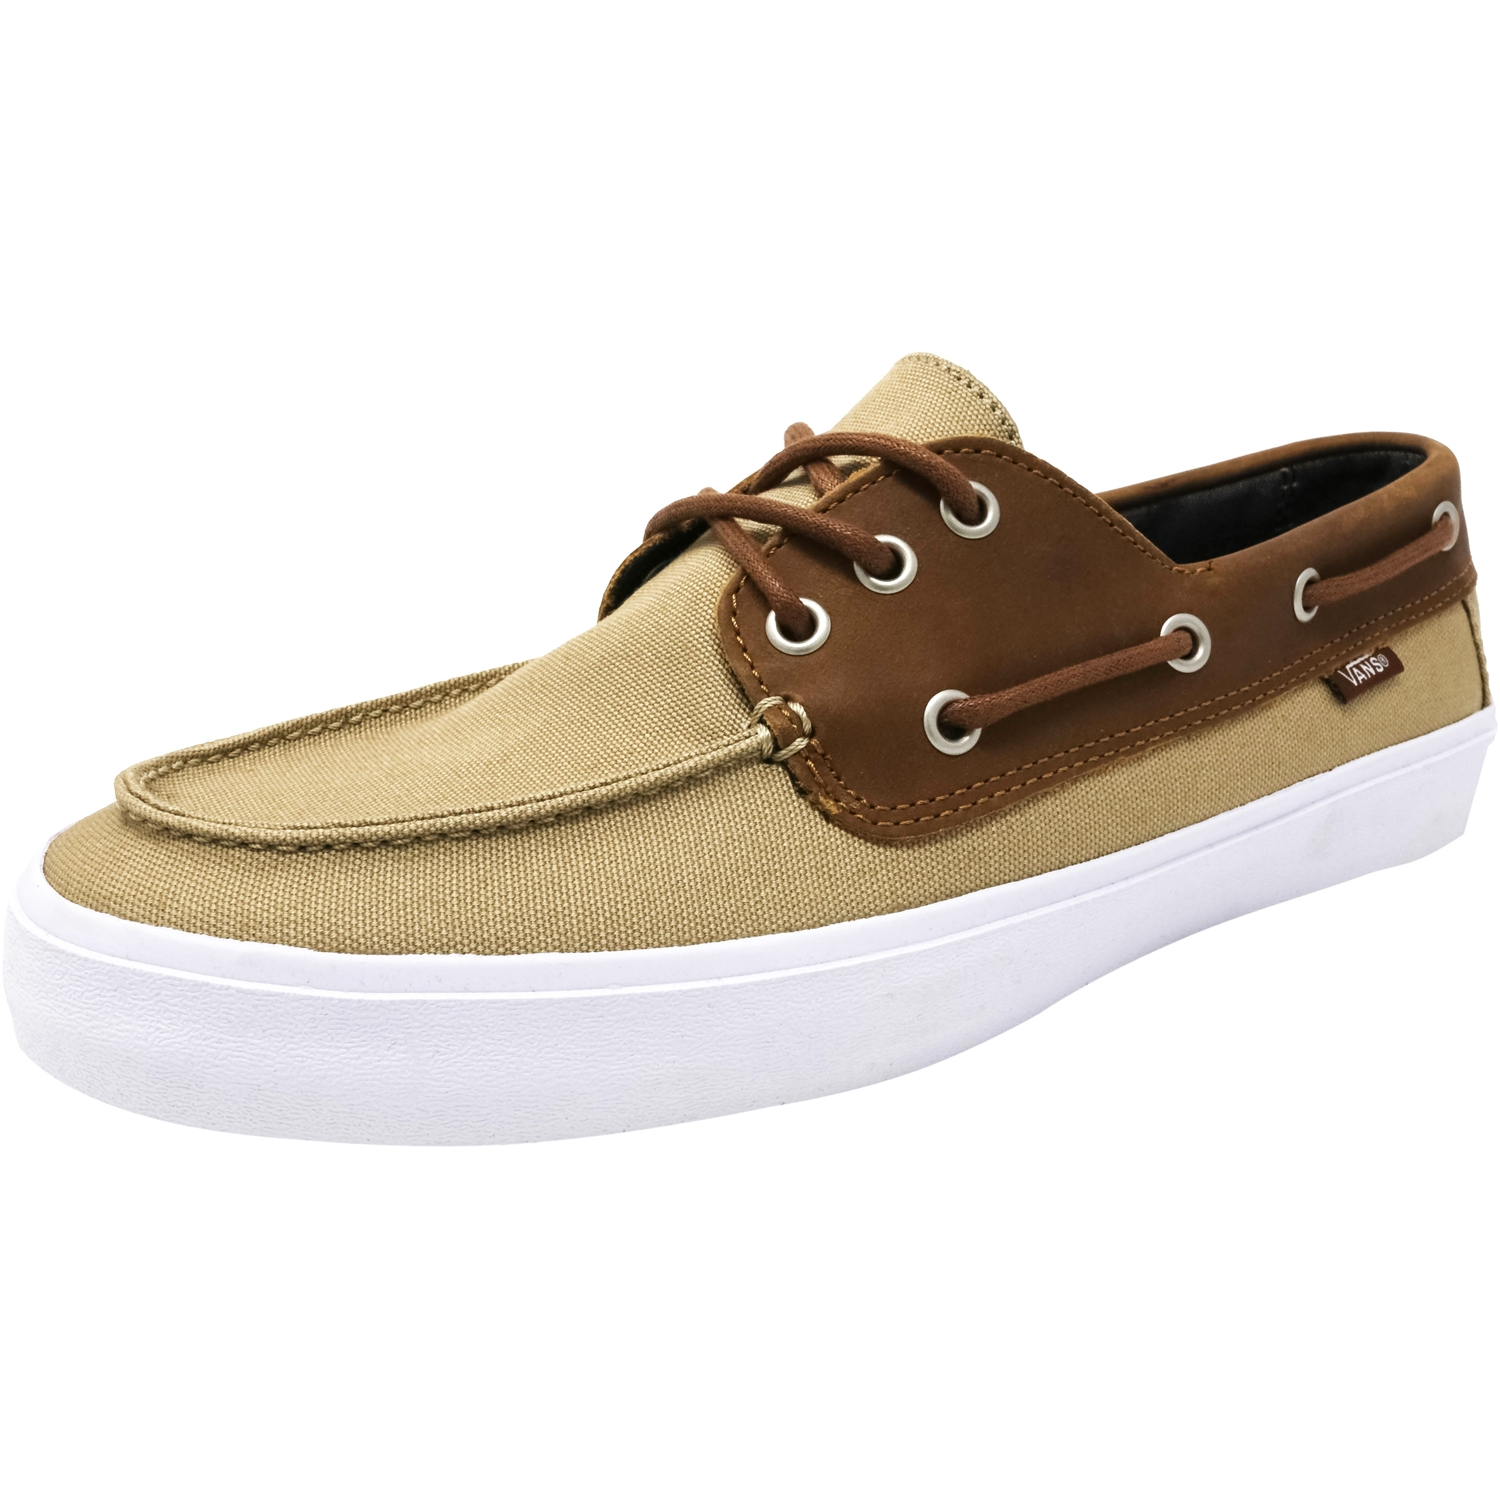 e7a8594e3a5a9f Vans Men s Chauffeur Sf C And L Khaki   Chambray Ankle-High Leather Flat  Shoe - 7M